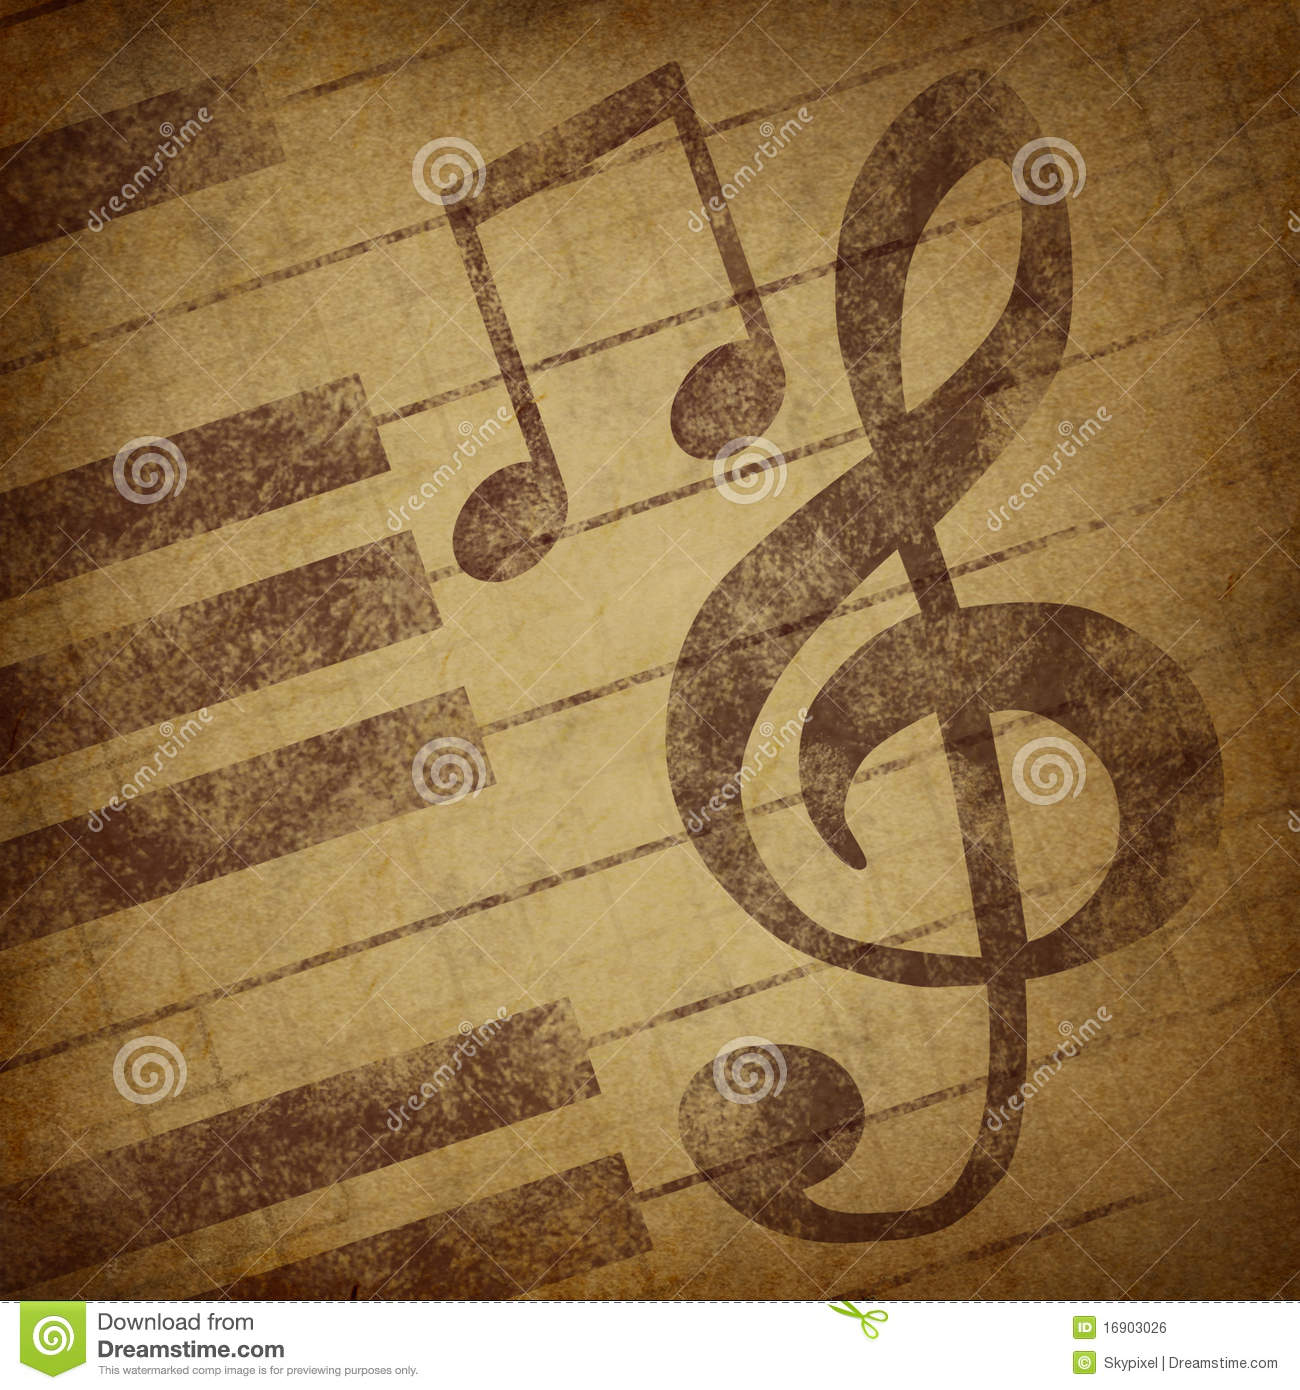 Grunge music notes stock vector illustration of icon 34098929 music notes symbol grunge vintage royalty free stock image biocorpaavc Image collections